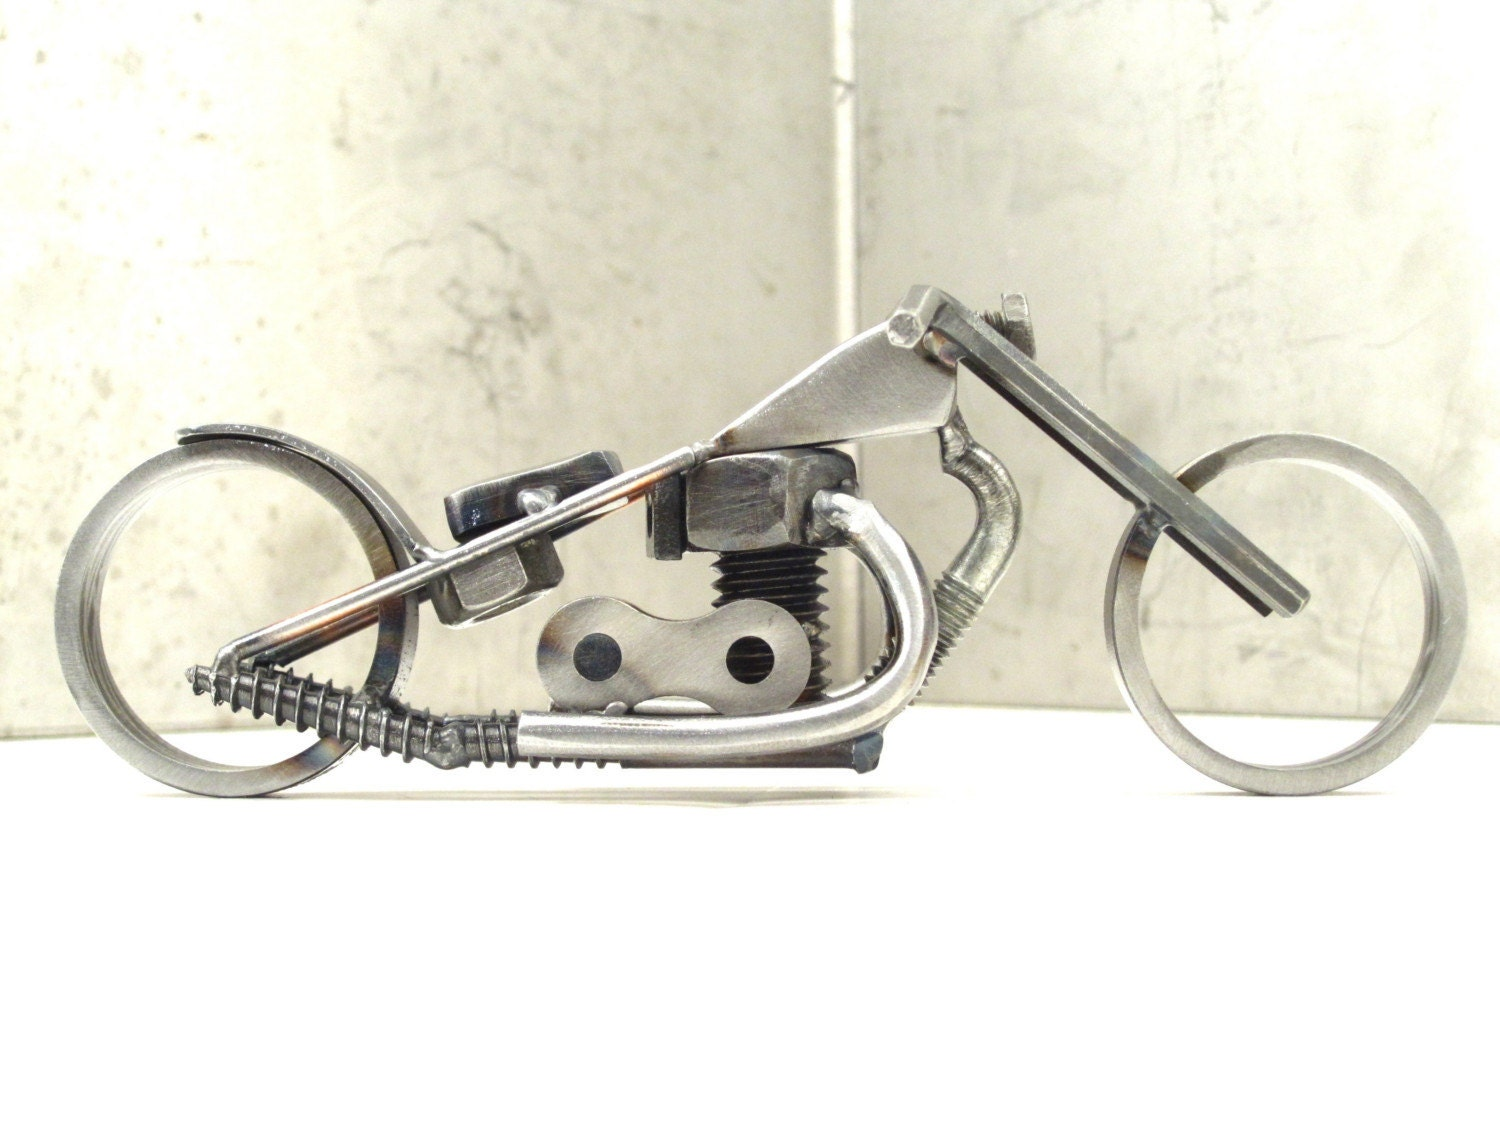 Scrap Metal Triumph Motorcycle Sculpture For Charity